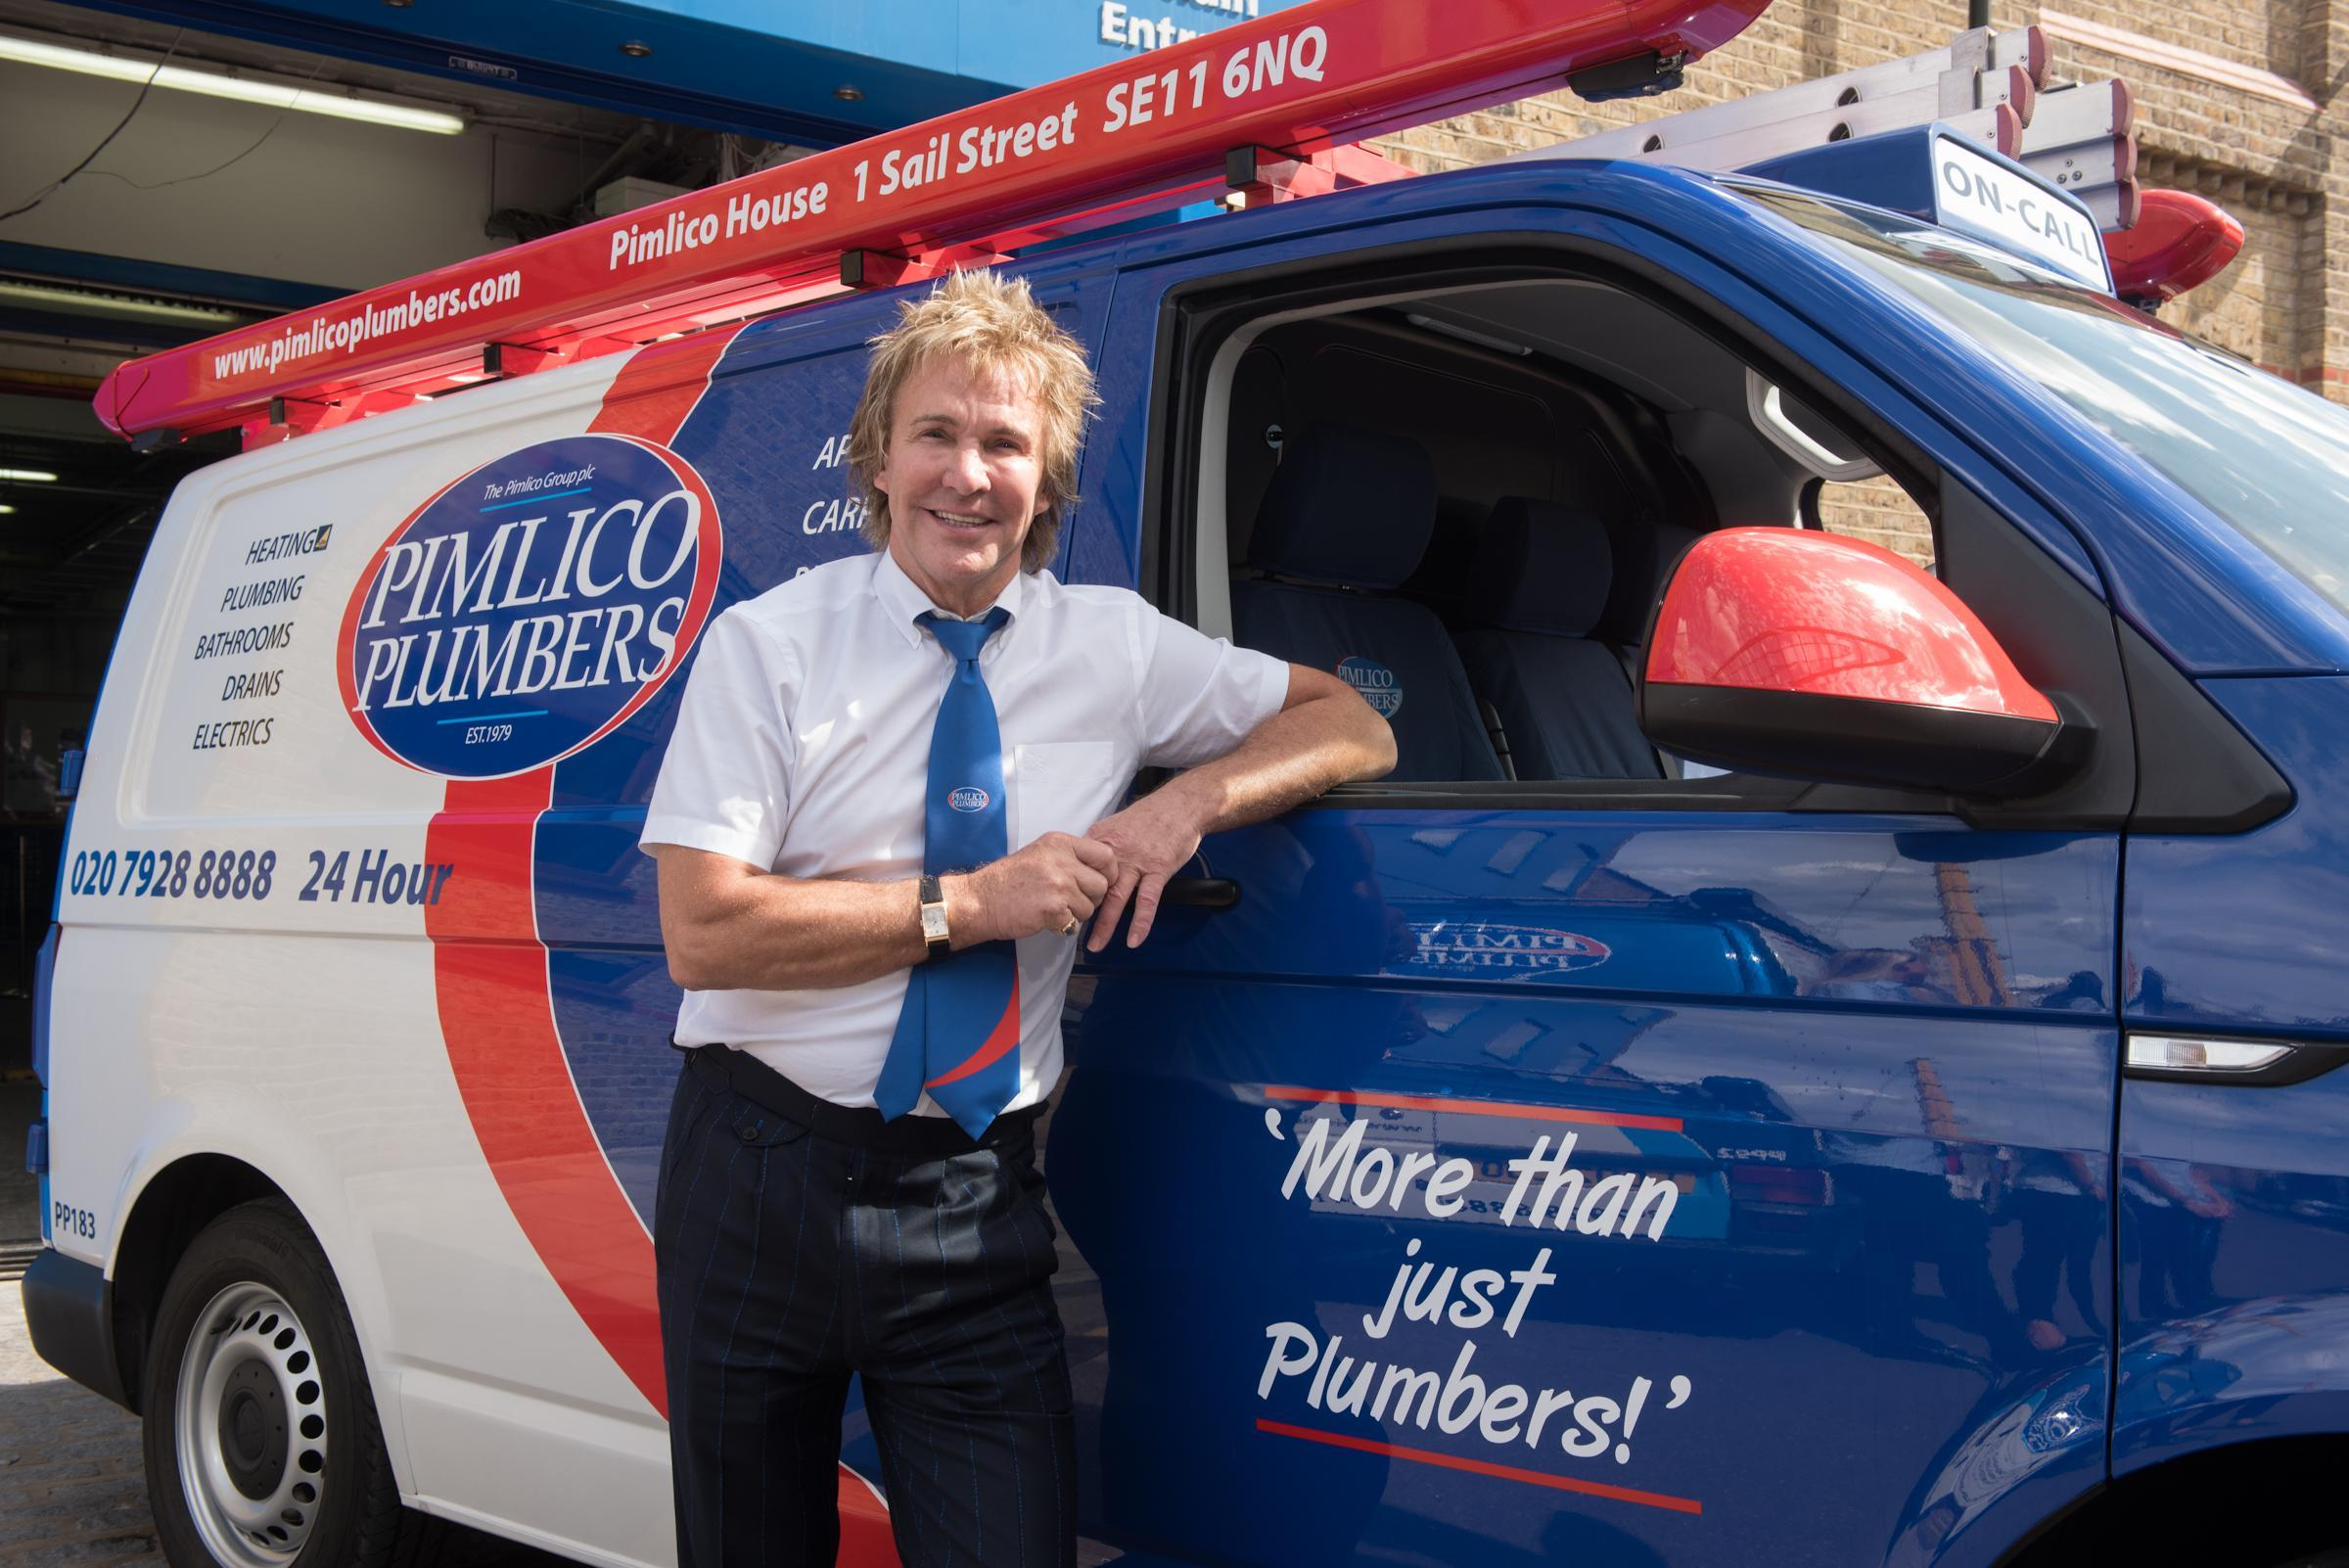 A View From The Top Pimlico Plumbers Boss Charlie Mullins On That Supreme Court Ruling The Independent